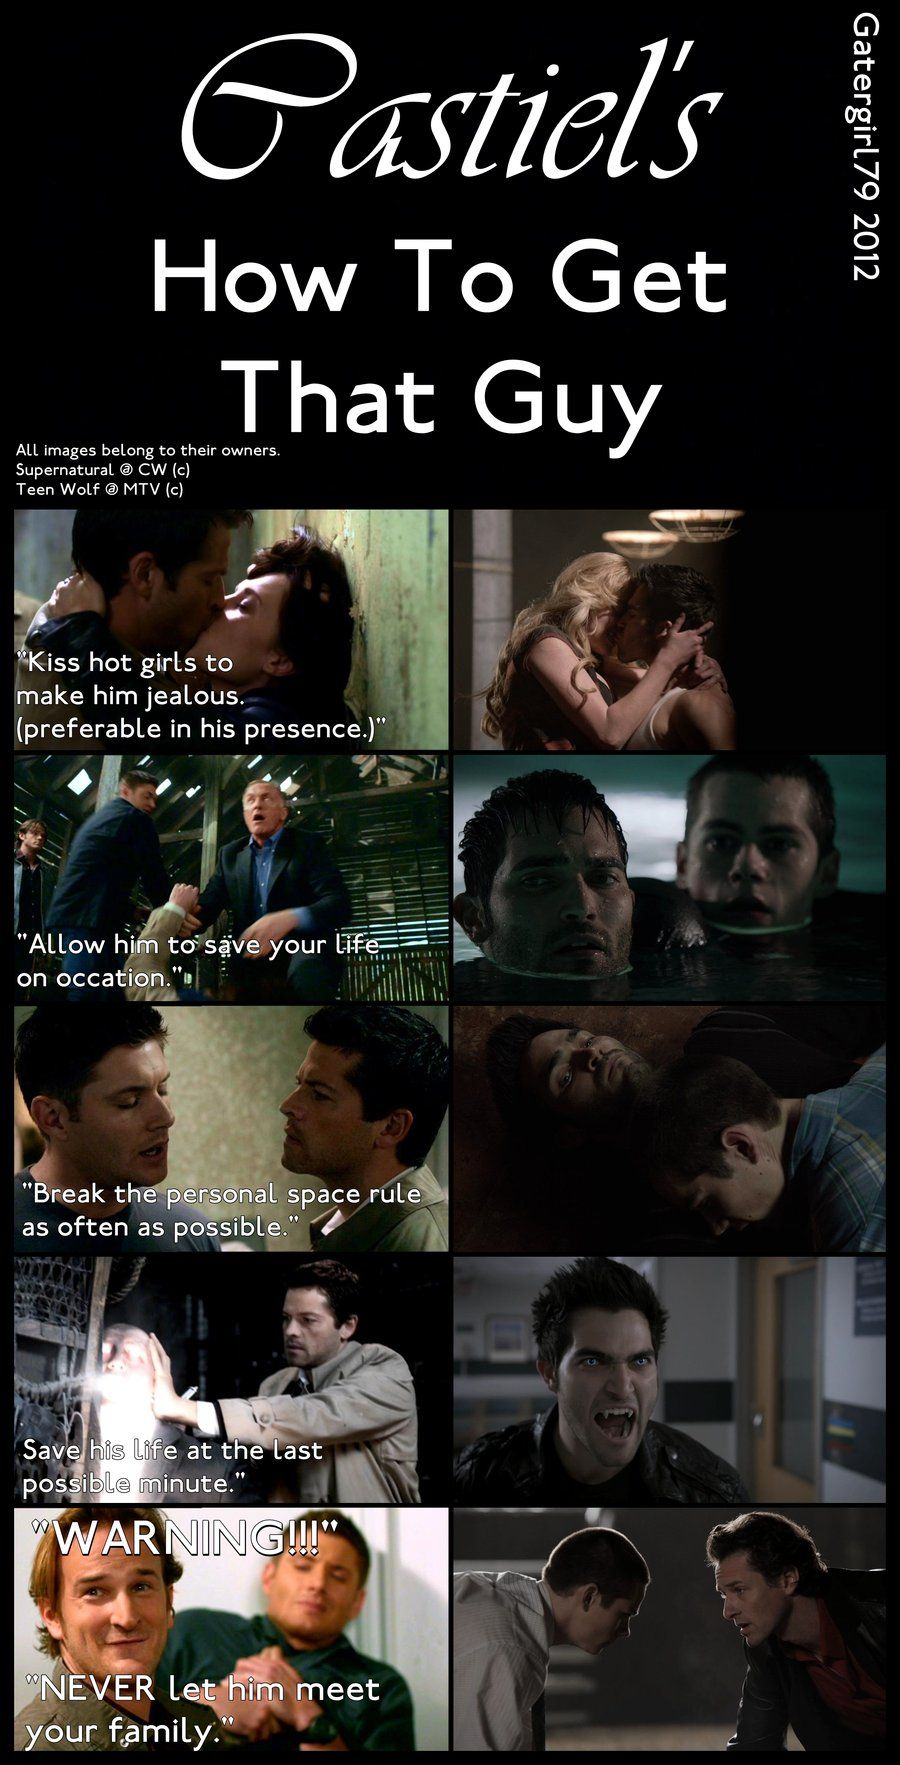 Castiel's How To Get That Guy Pt 2 by Gatergirl79.deviantart.com   Again featuring Sterek!